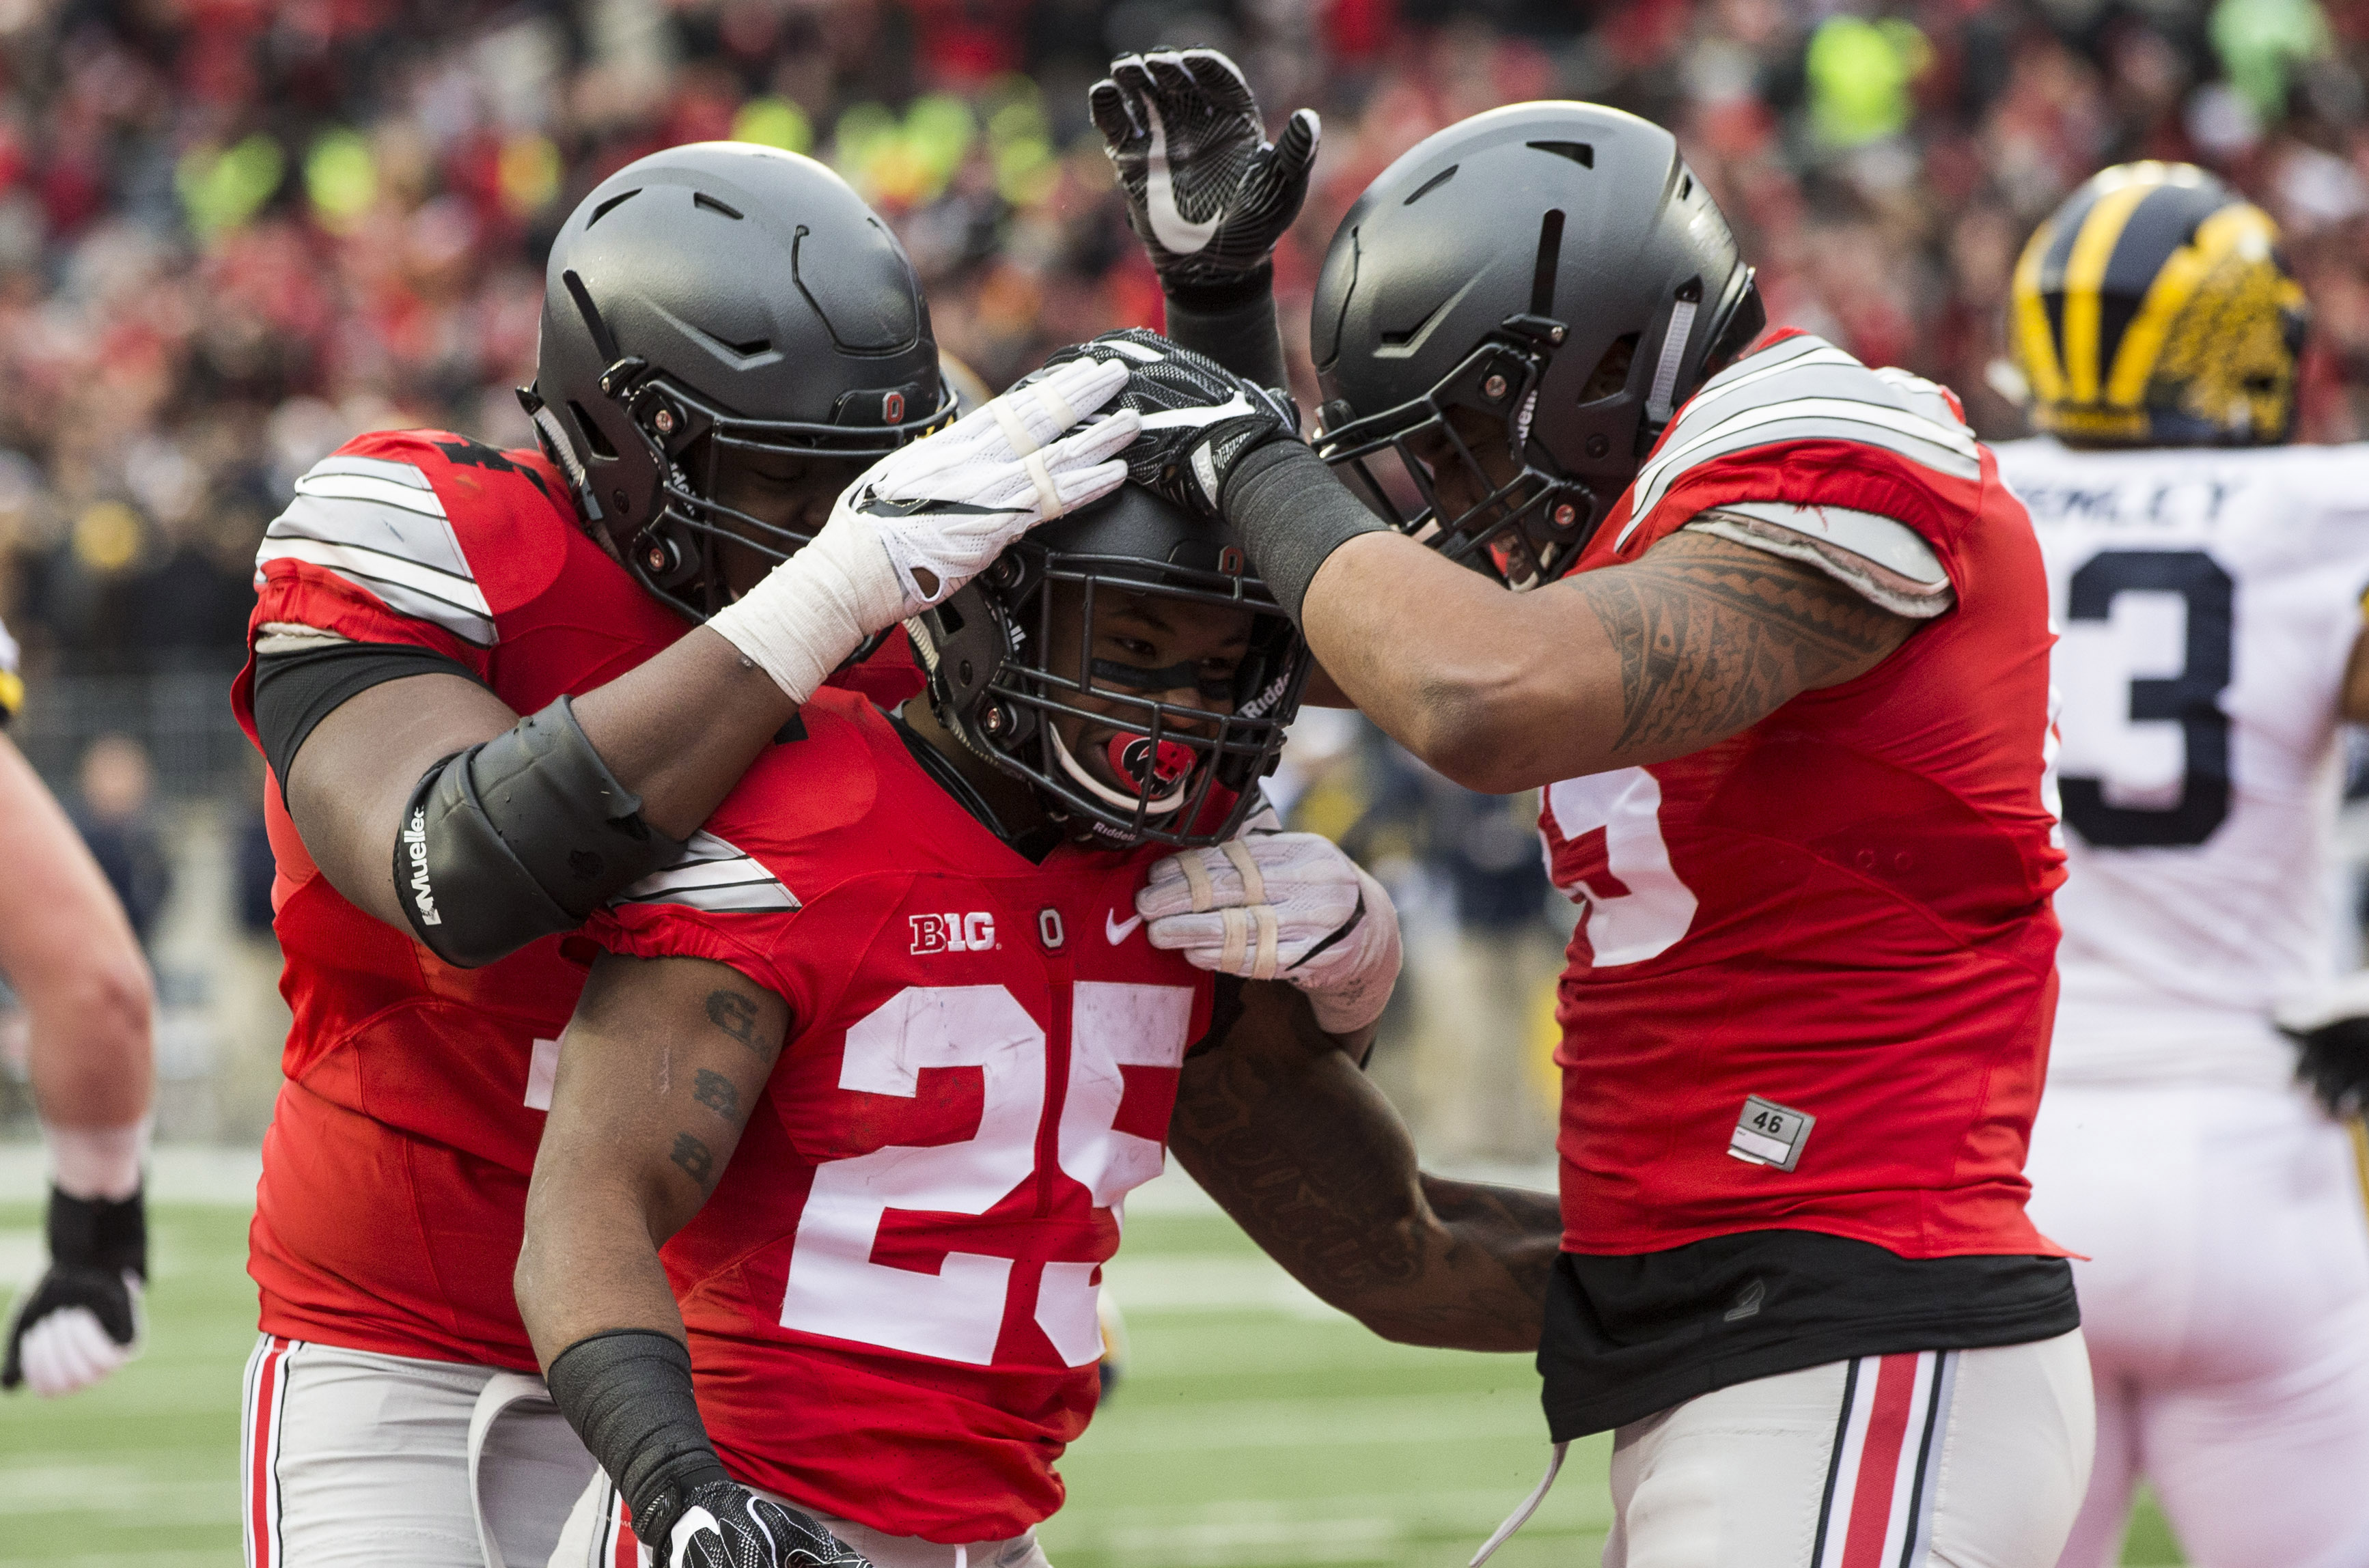 Ohio State Football: Should You Judge a Class After Their ...